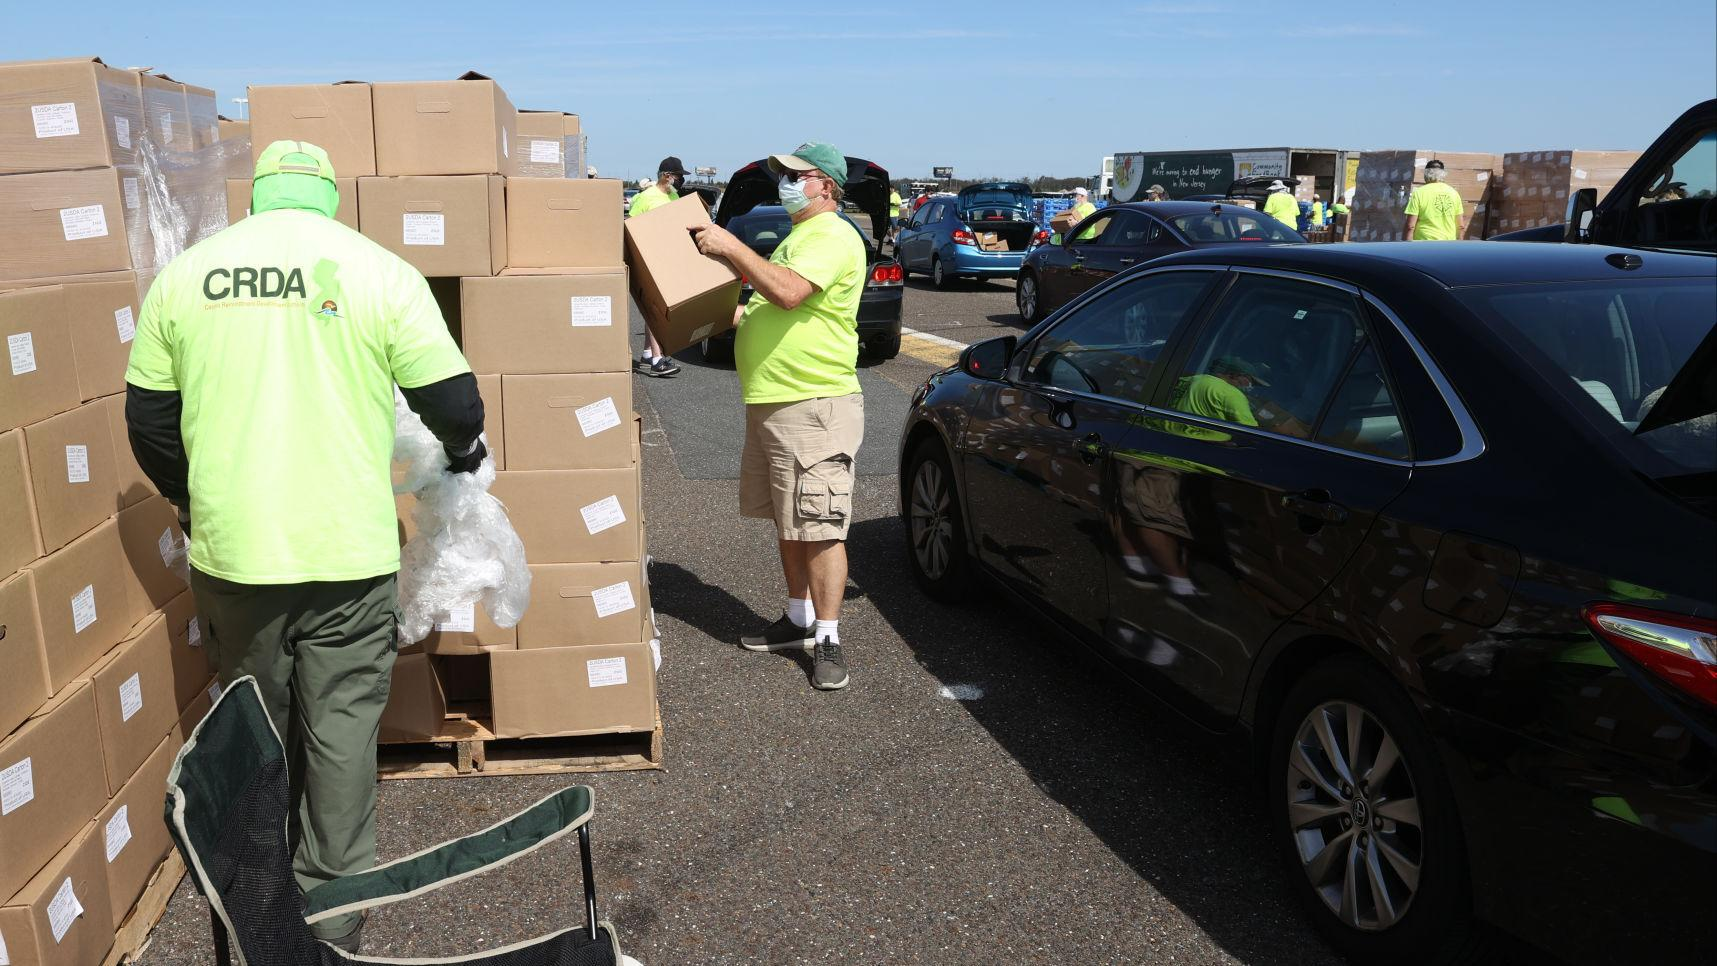 Eighth Food Distribution Event To Be Held Thursday At Bader Field Local News Pressofatlanticcity Com